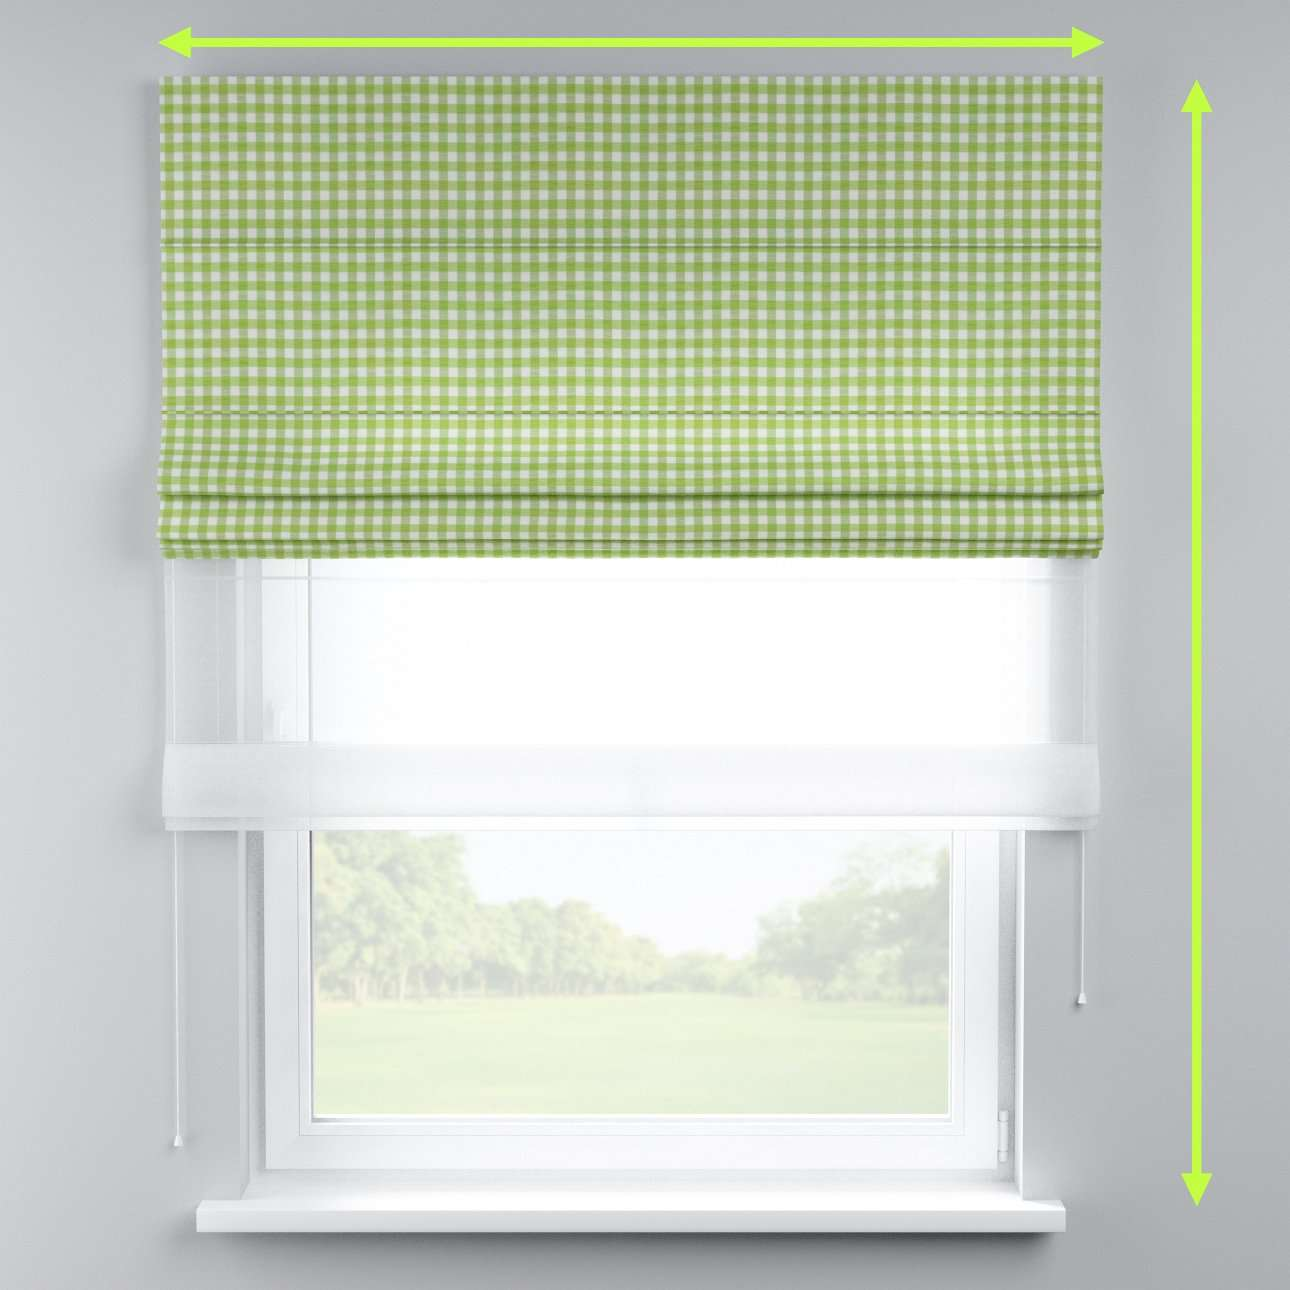 Voile and fabric roman blind (DUO II) in collection Quadro, fabric: 136-34